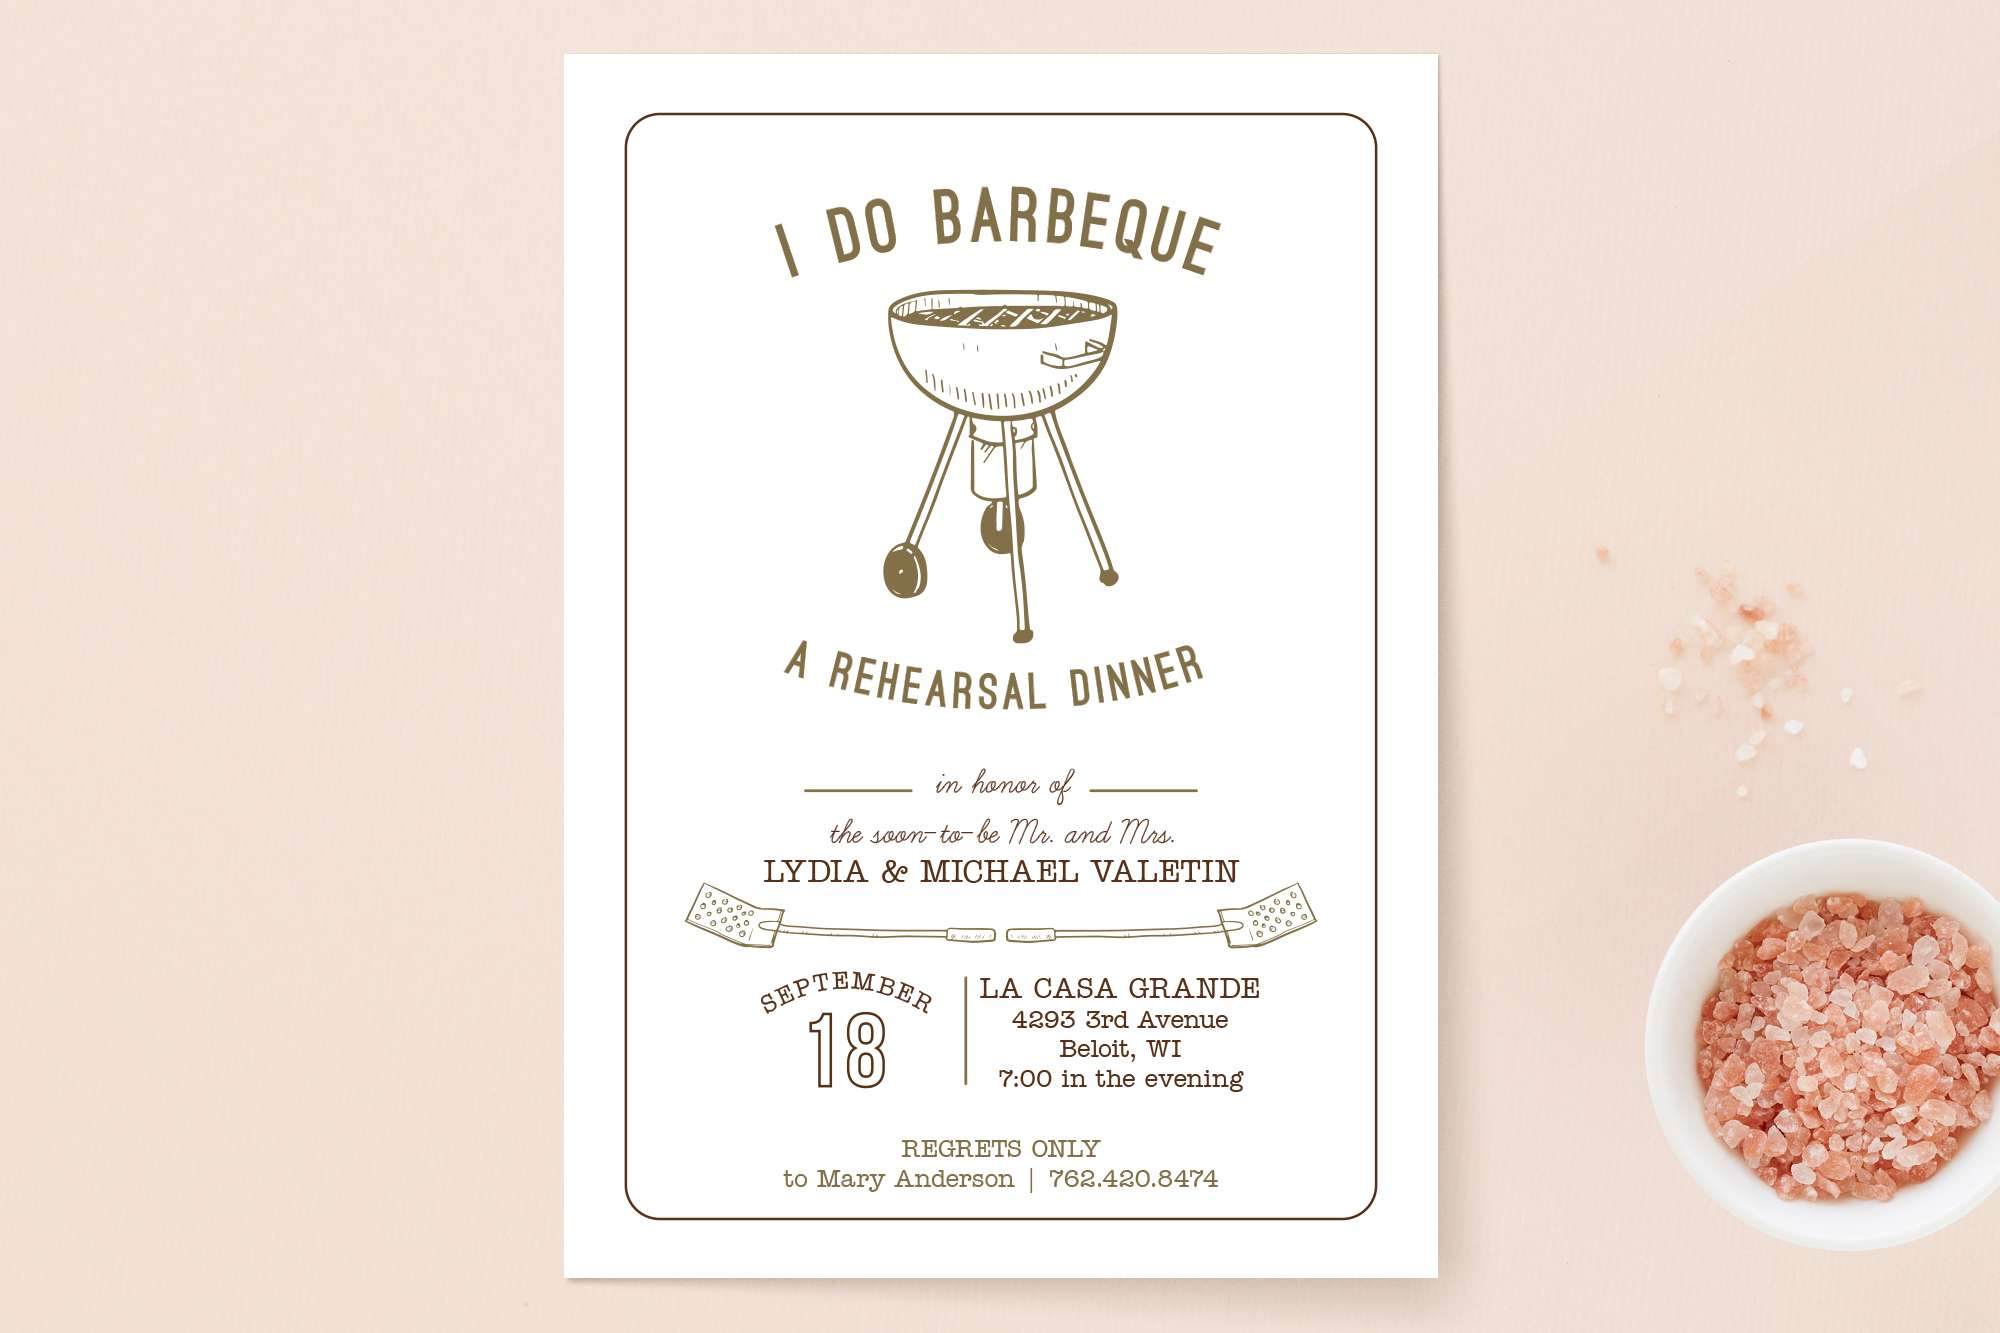 13 Rehearsal Dinner Invitations to Commemorate the Night